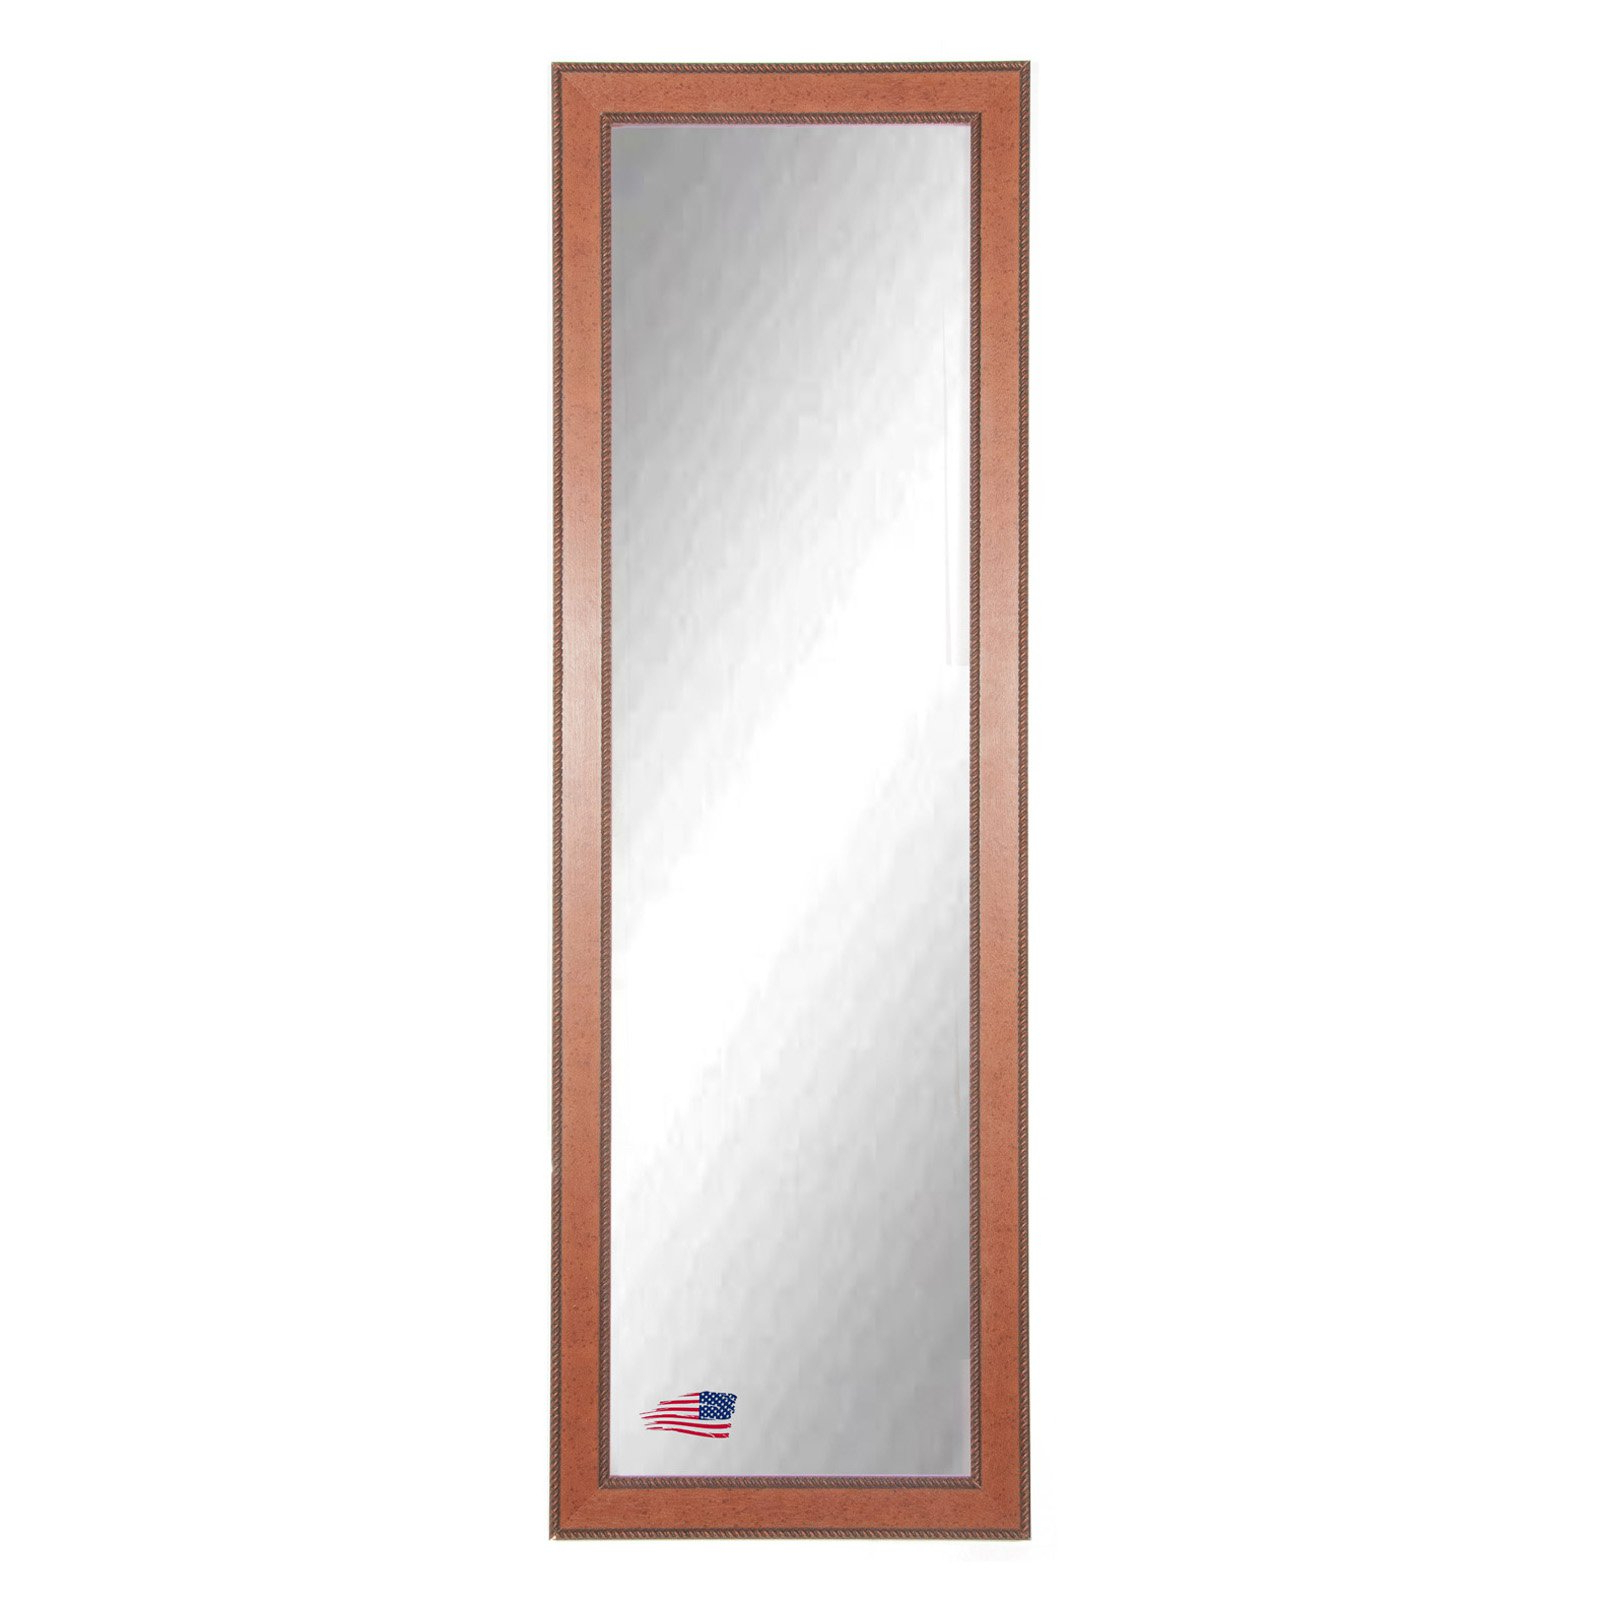 Latest Rayne Mirrors Western Rope Full Length Body Wall Mirror Pertaining To Full Size Wall Mirrors (View 13 of 20)